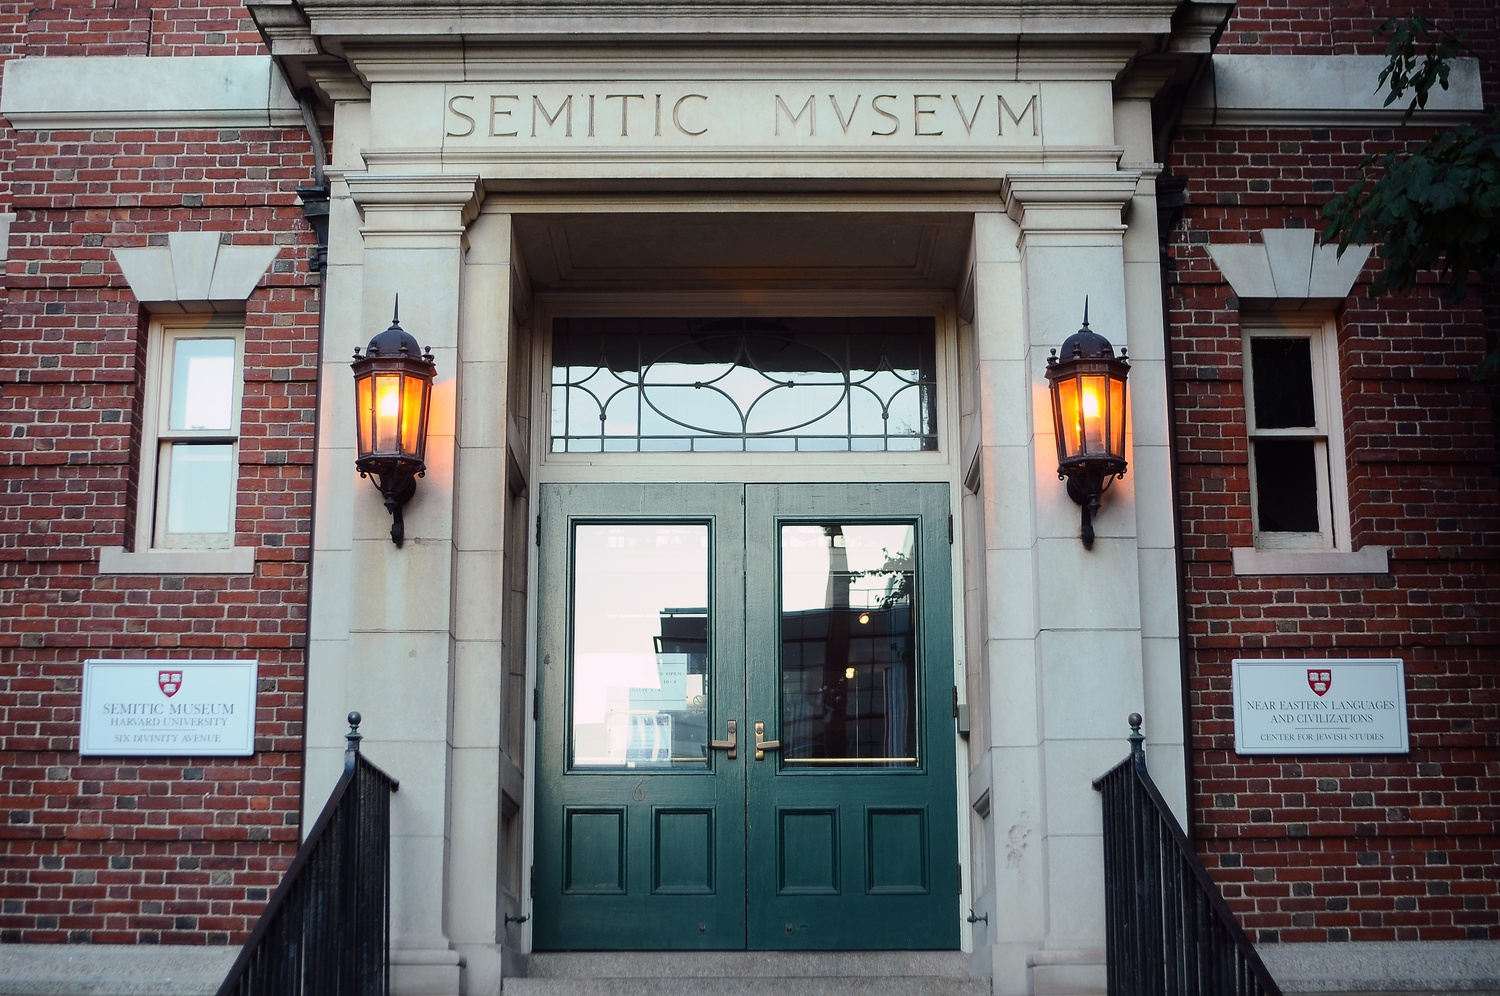 The Semitic Museum on Divinity Ave., home to the Near Eastern Languages and Civilizations department and the Ashkelon excavation along with its museum galleries, remains open as an elevator is added to the building this year.